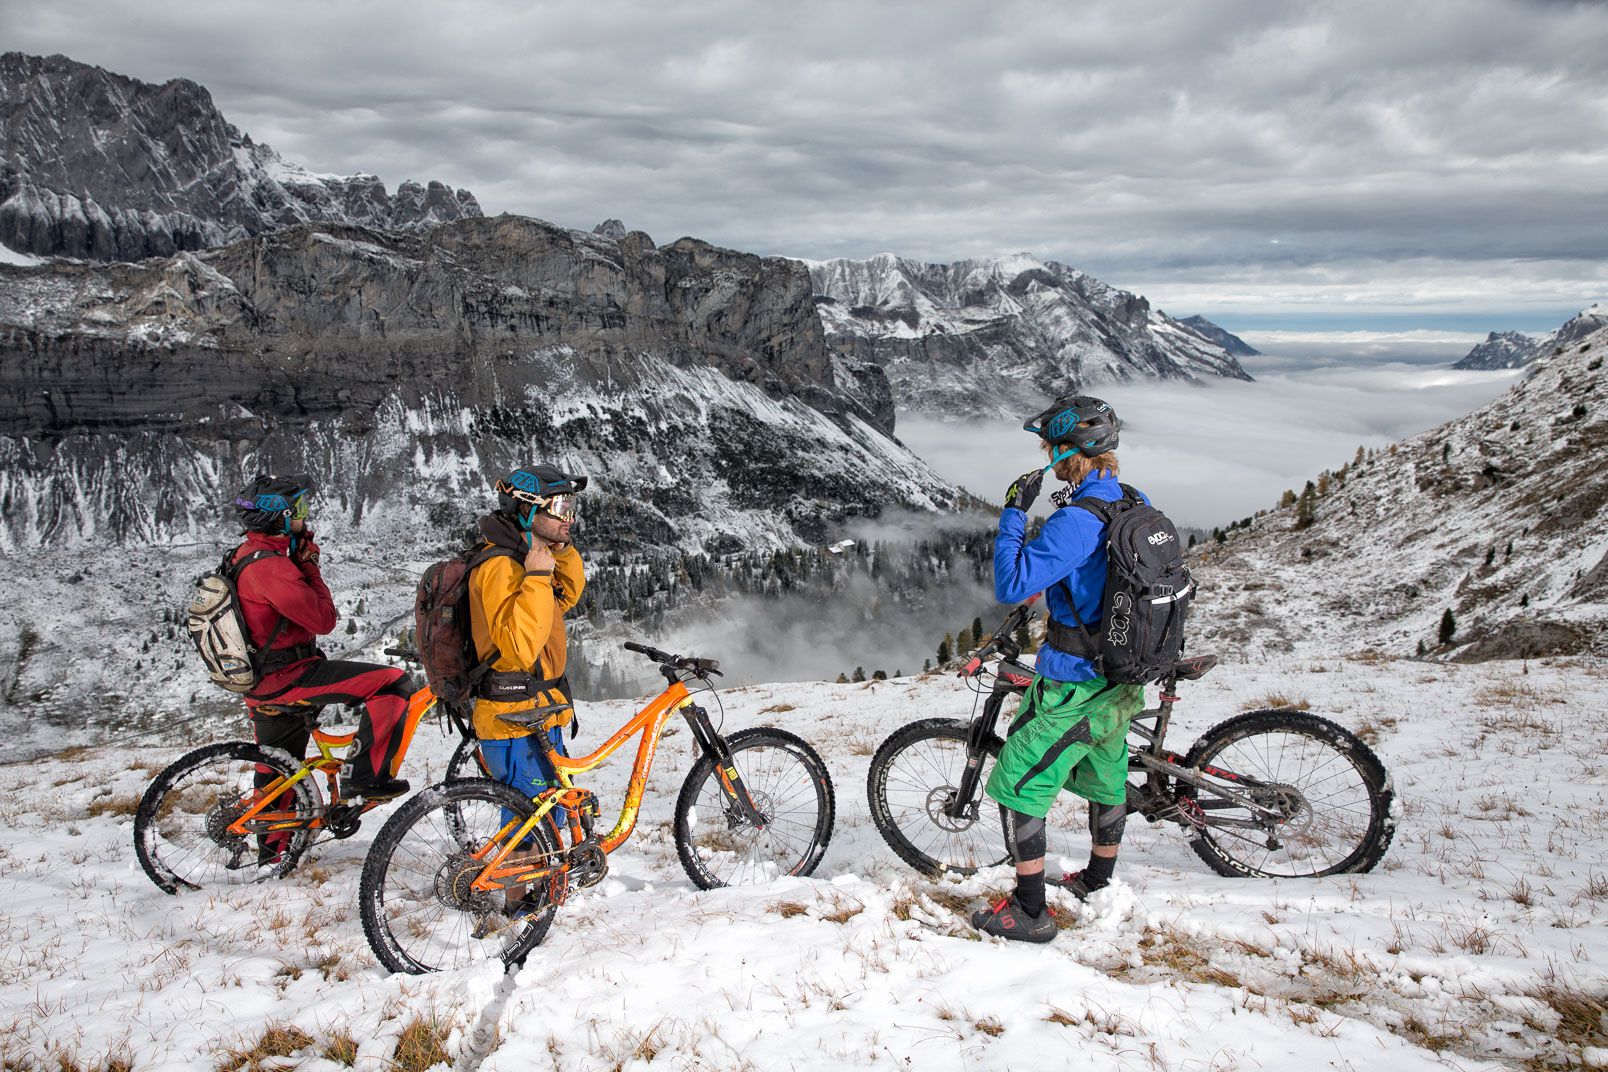 Late Fall Alpine MTB | Stefan Kuerzi - Adventure Photography